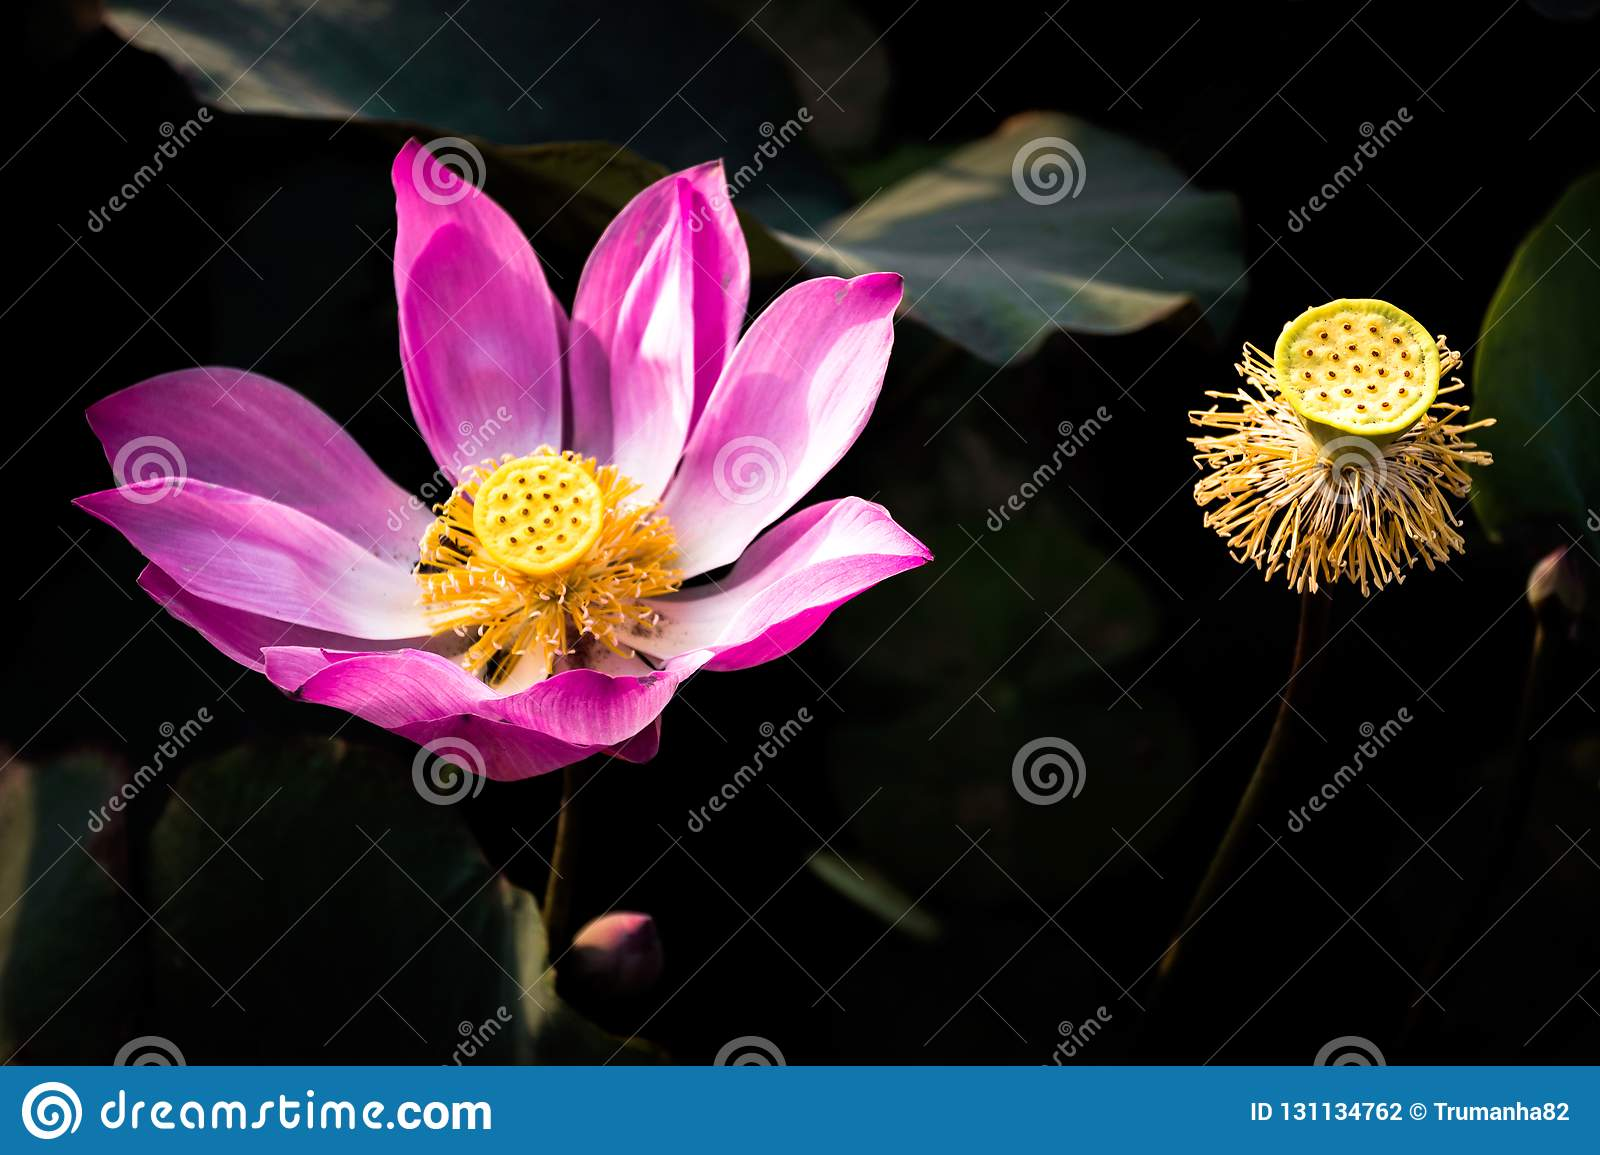 Pink Lotus Flower And Seed Pods In Black Background Stock Photo